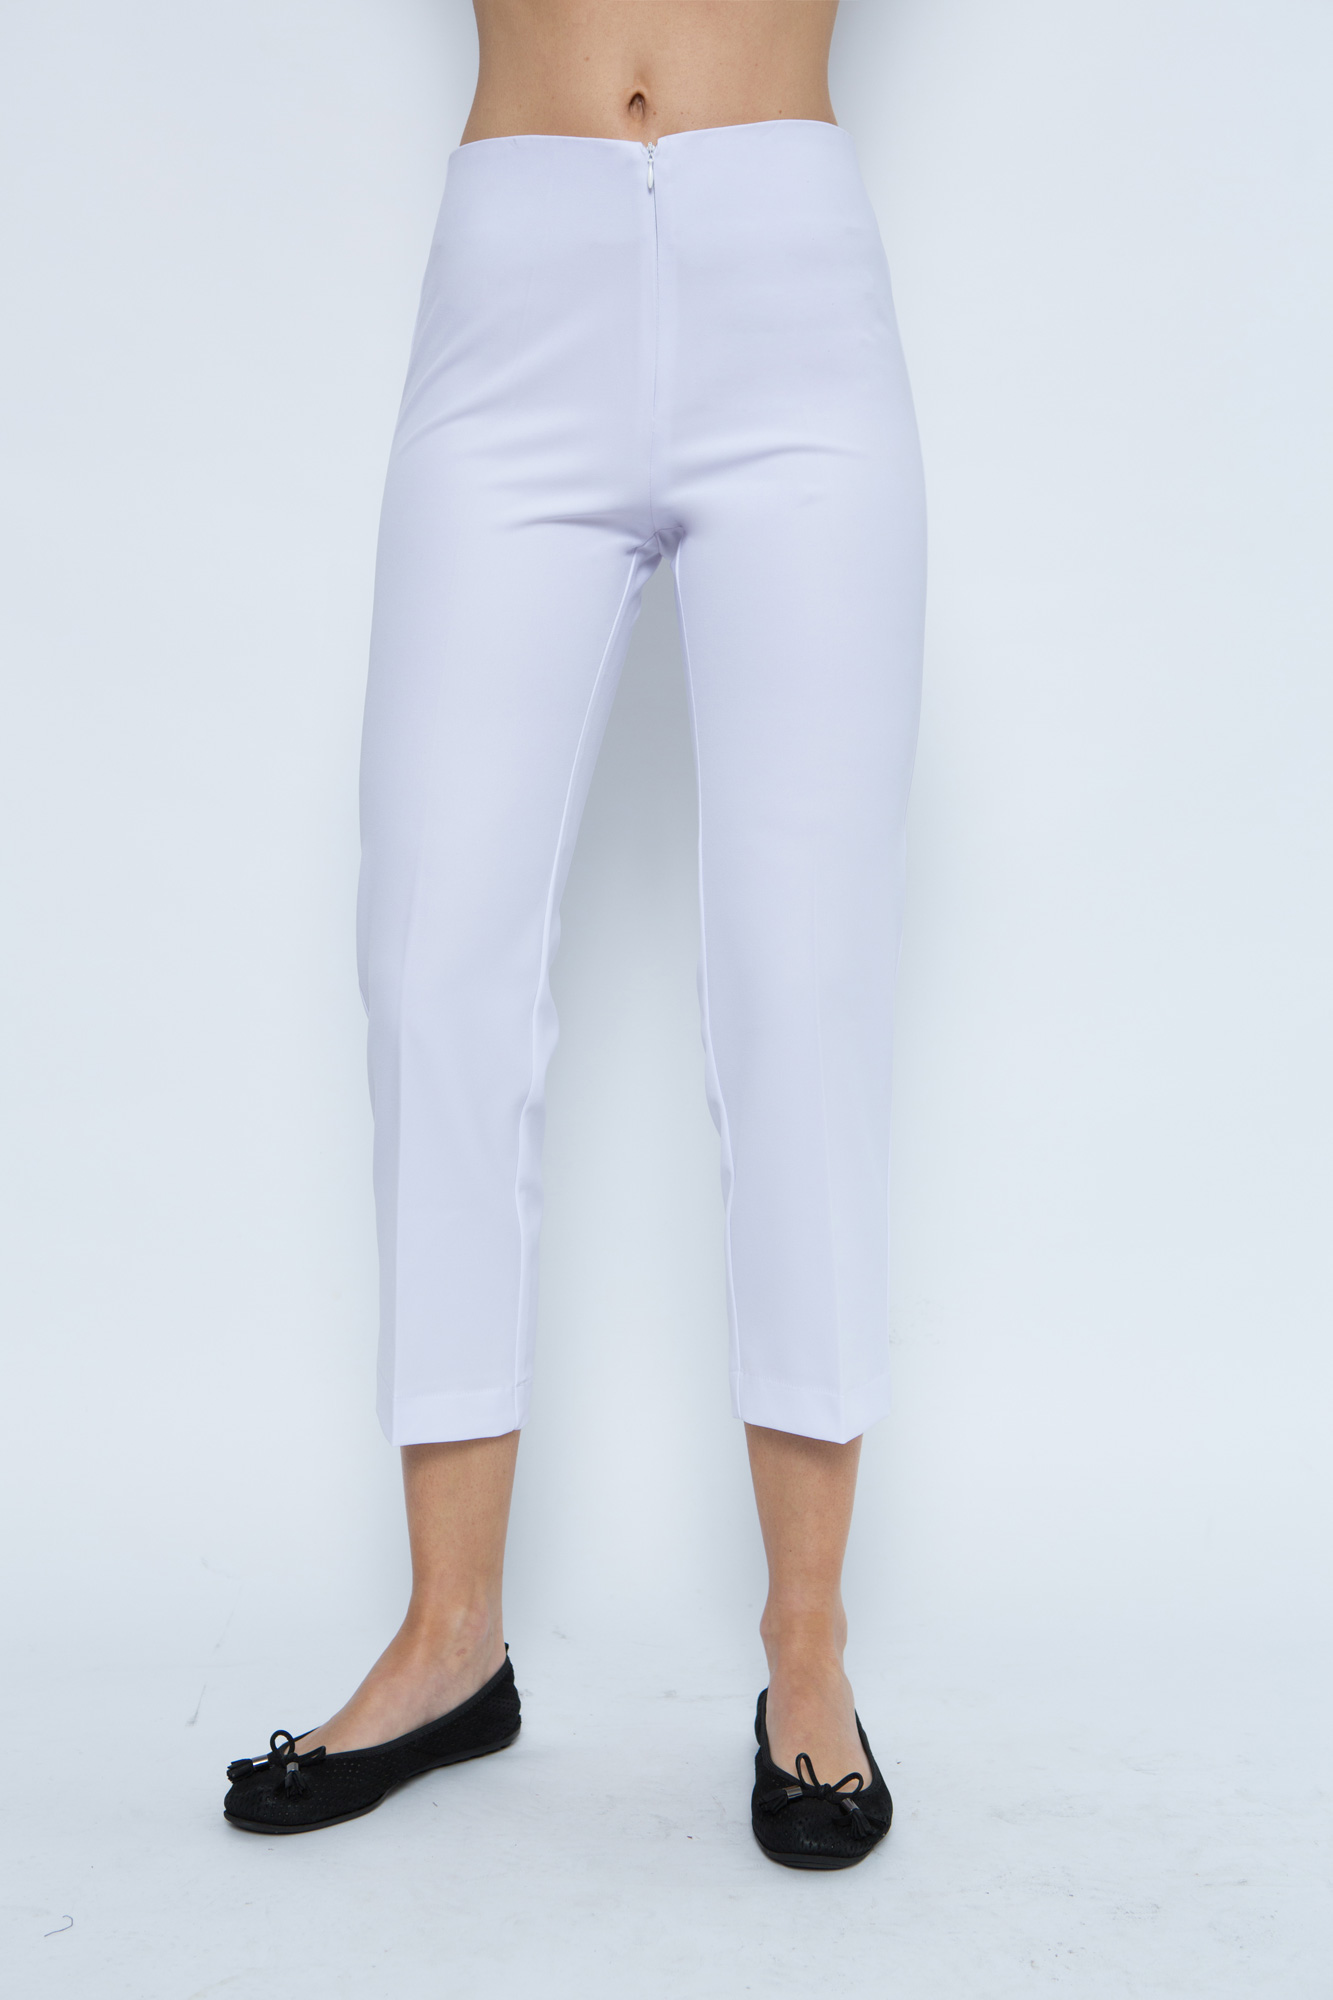 SPA 222 3/4 Length Capri Pant Beauty Uniform